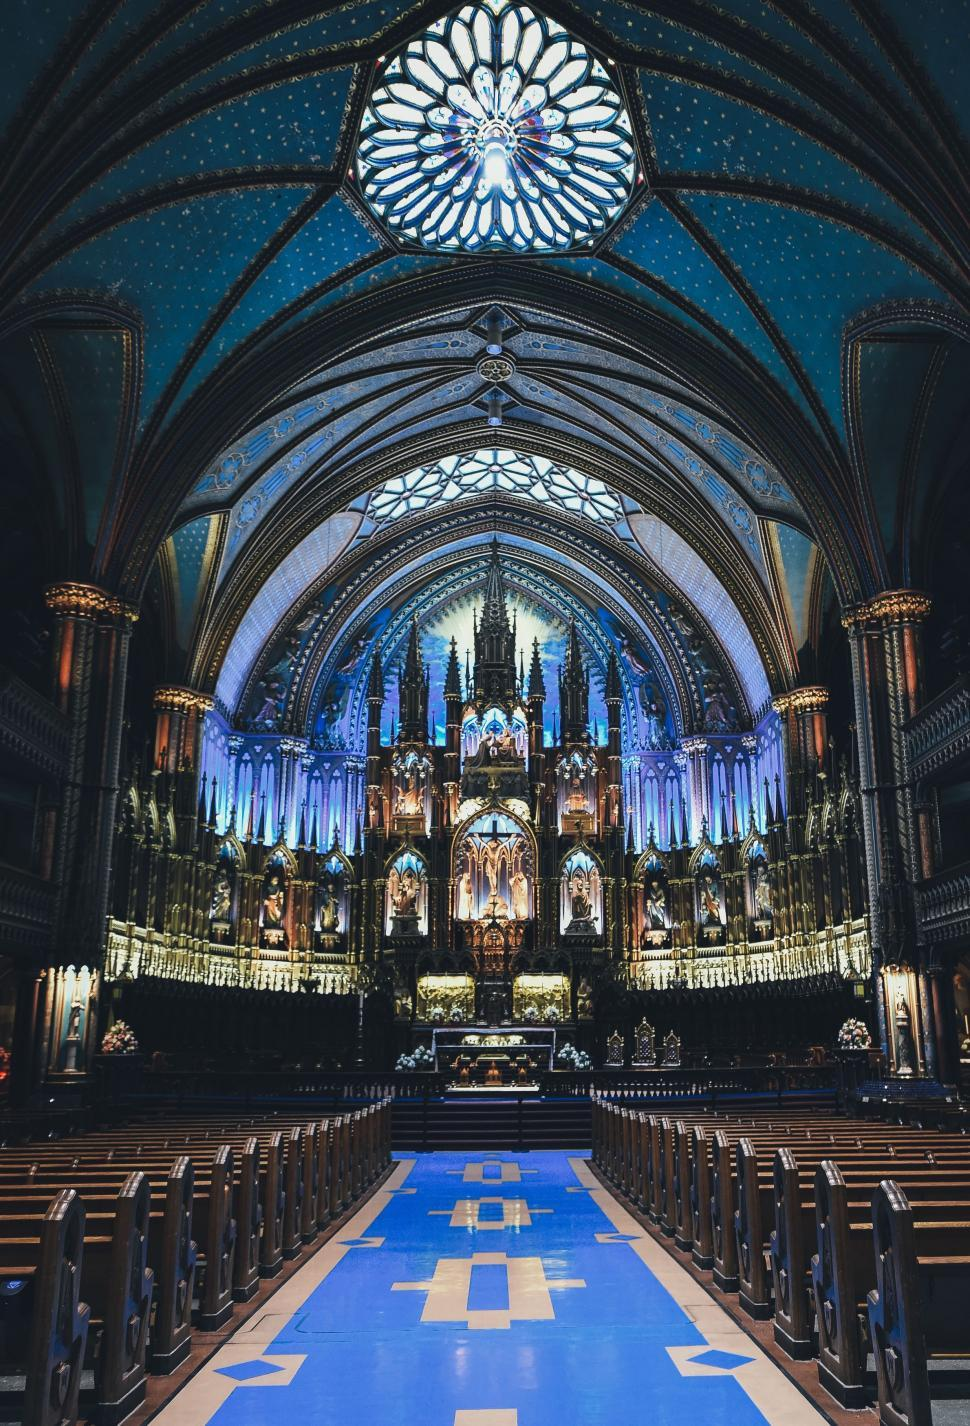 Download Free Stock Photo of Inside View of Church with aisle